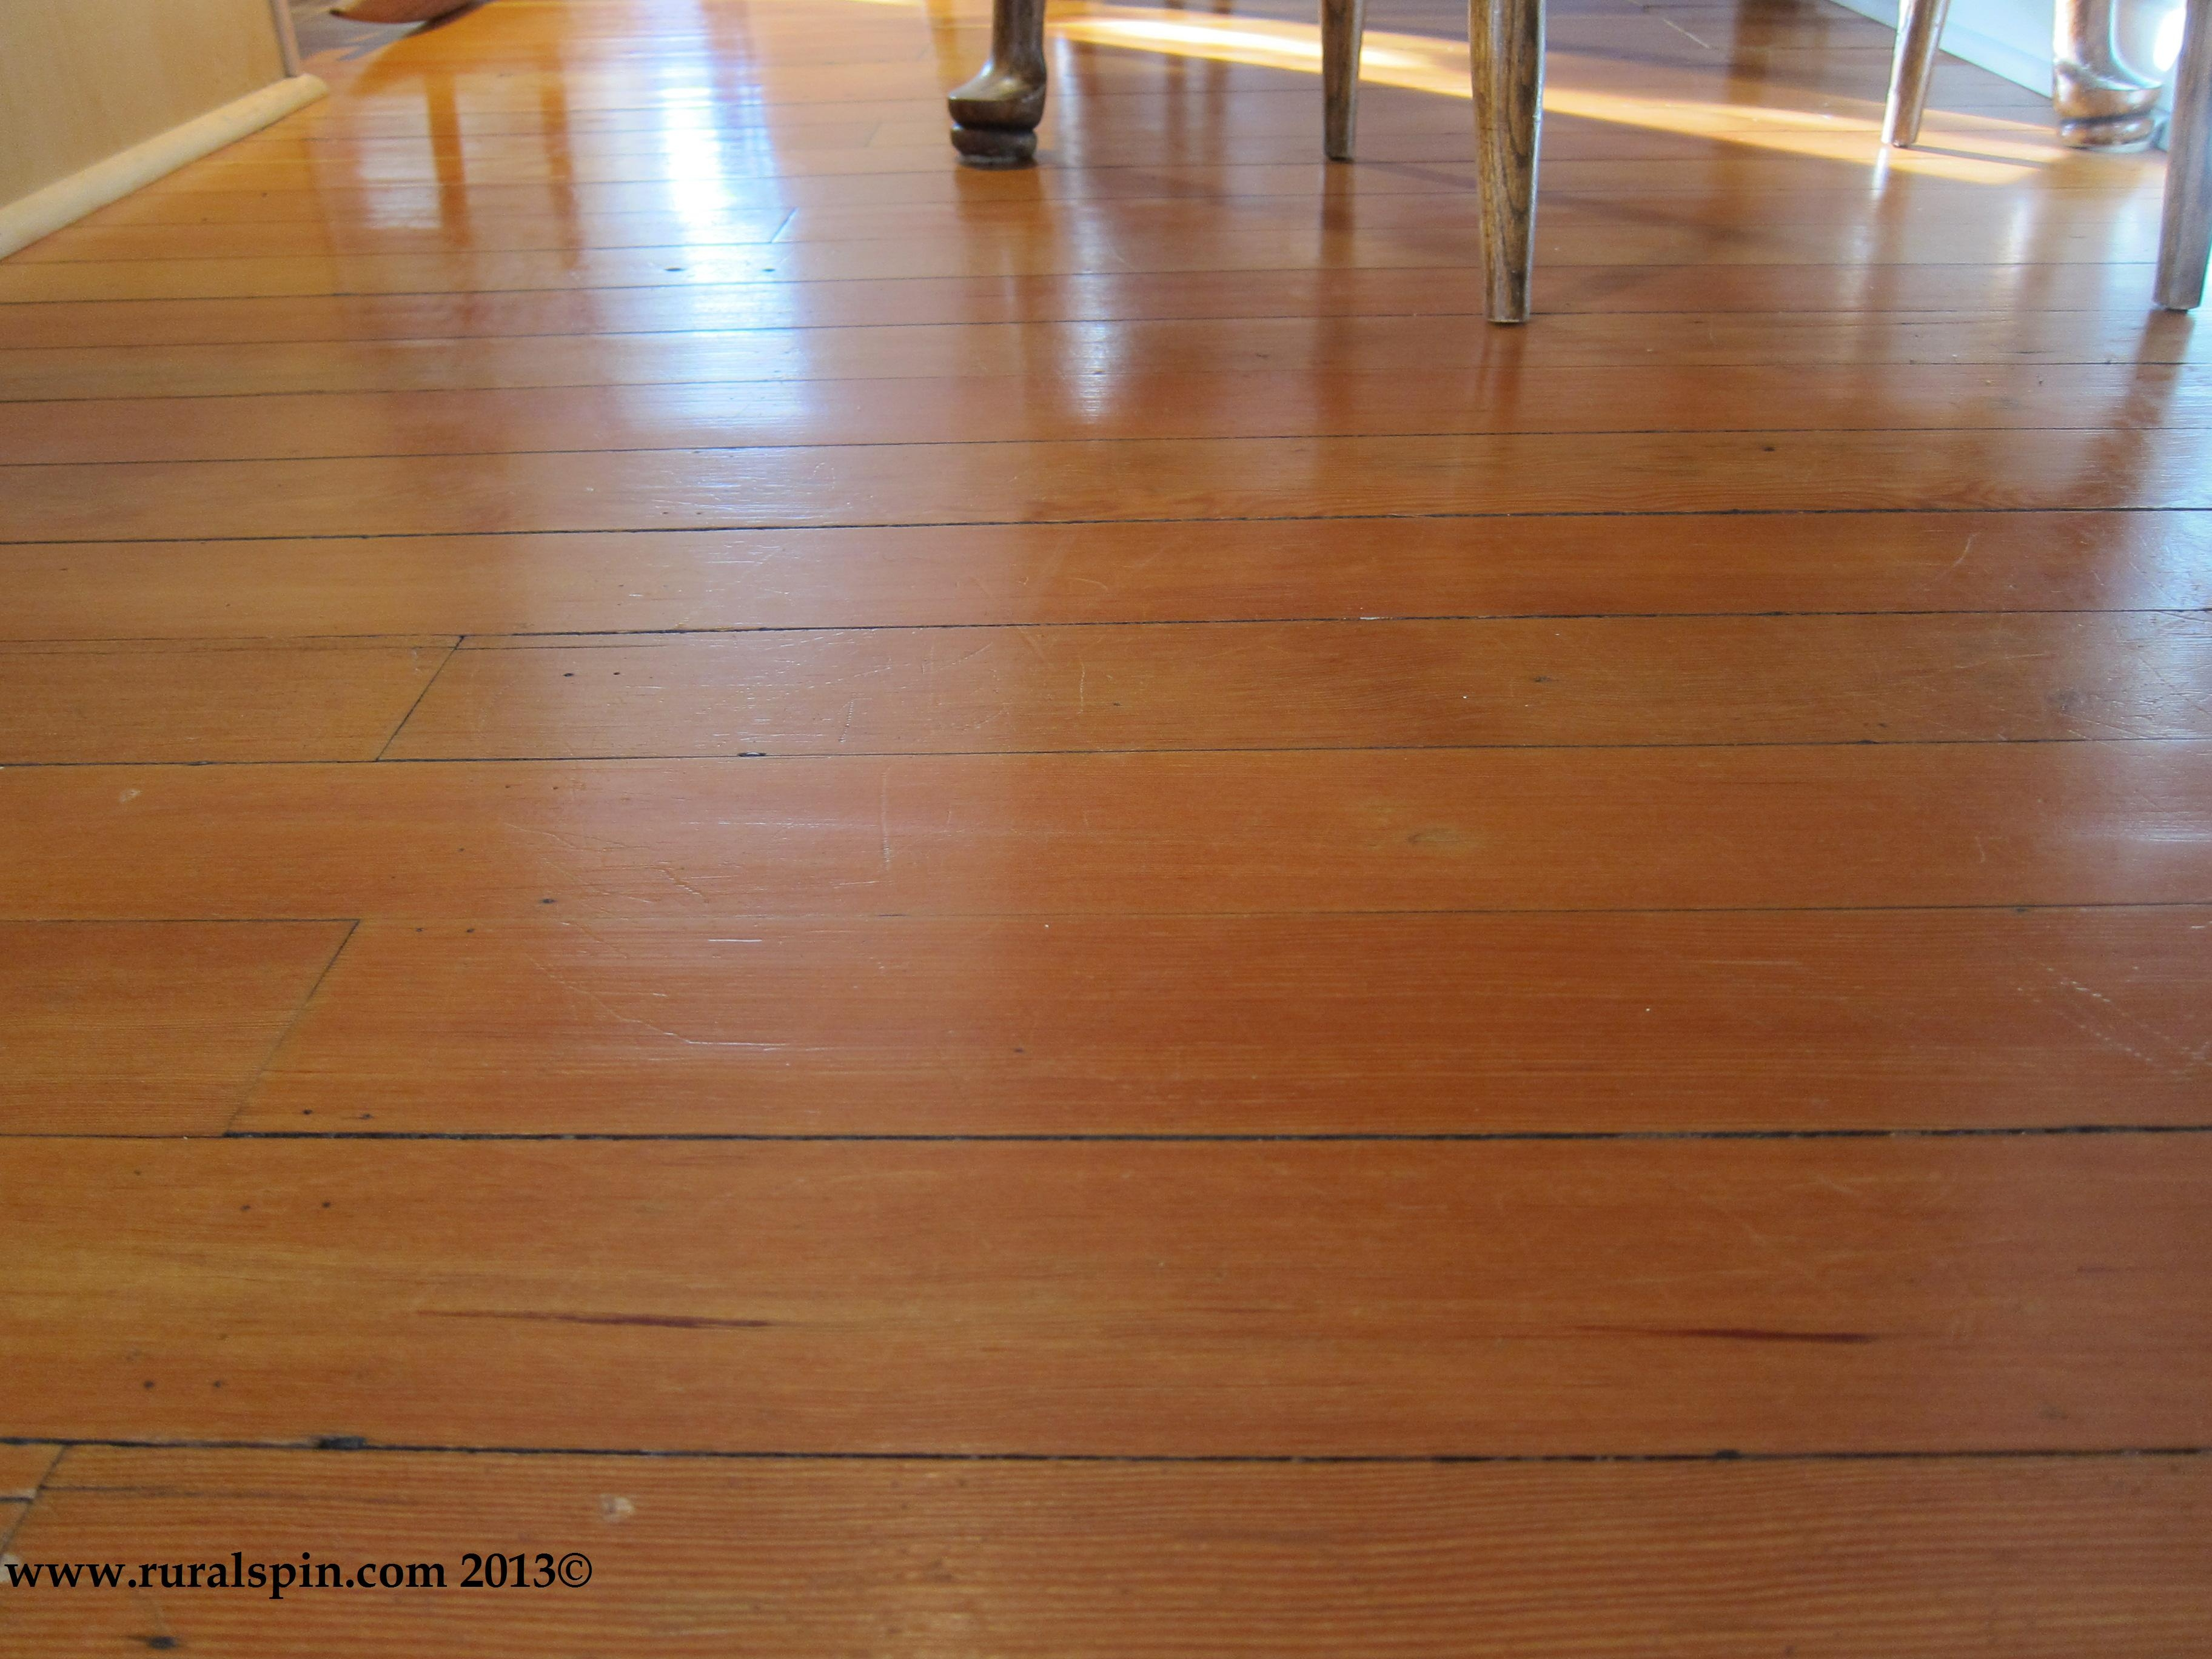 Mopping Wood Floors With Tea